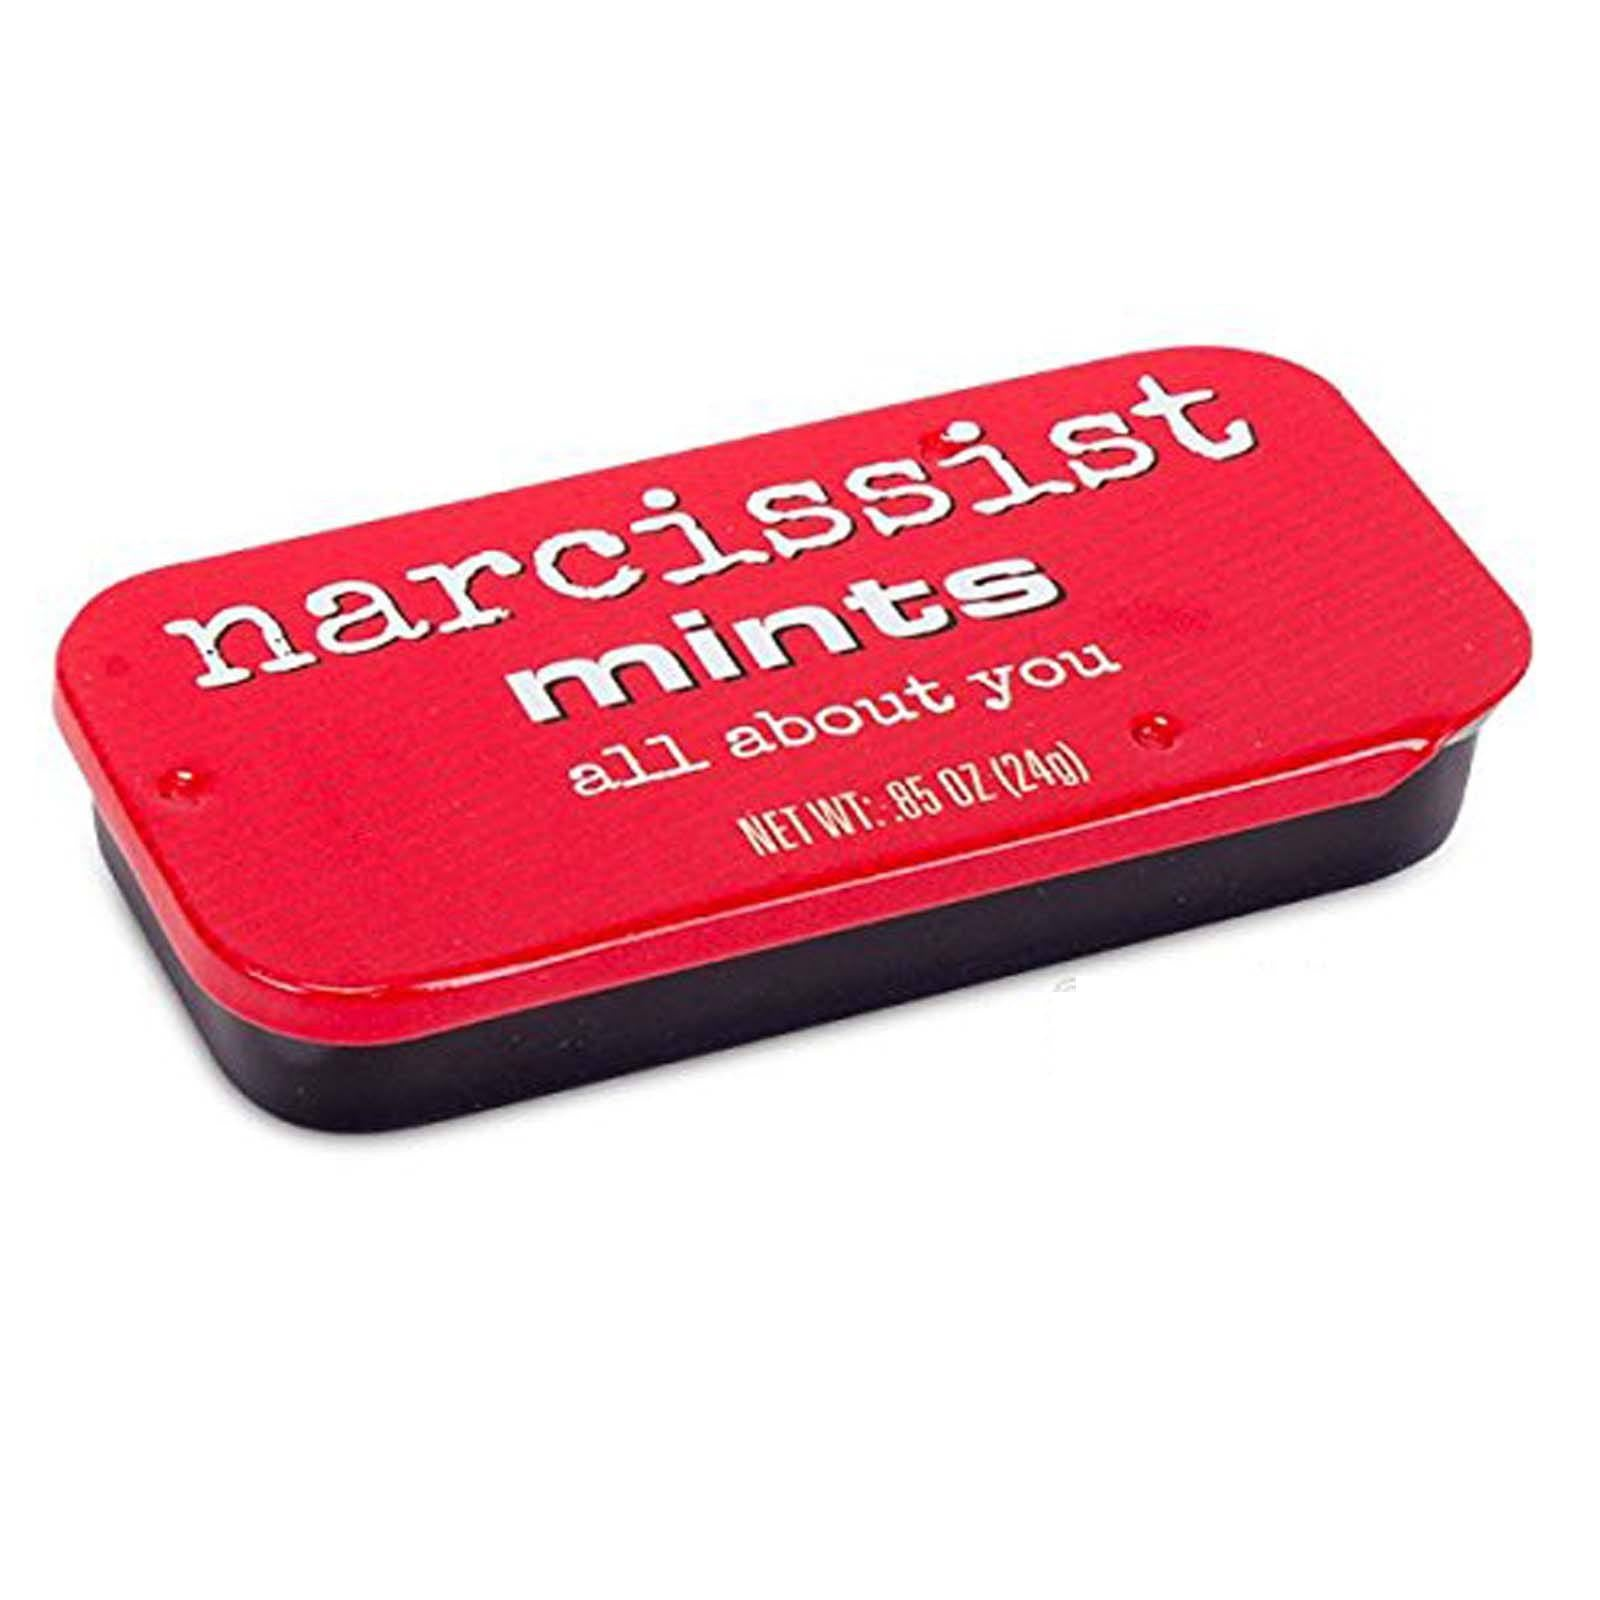 narcissist all about you mints candy